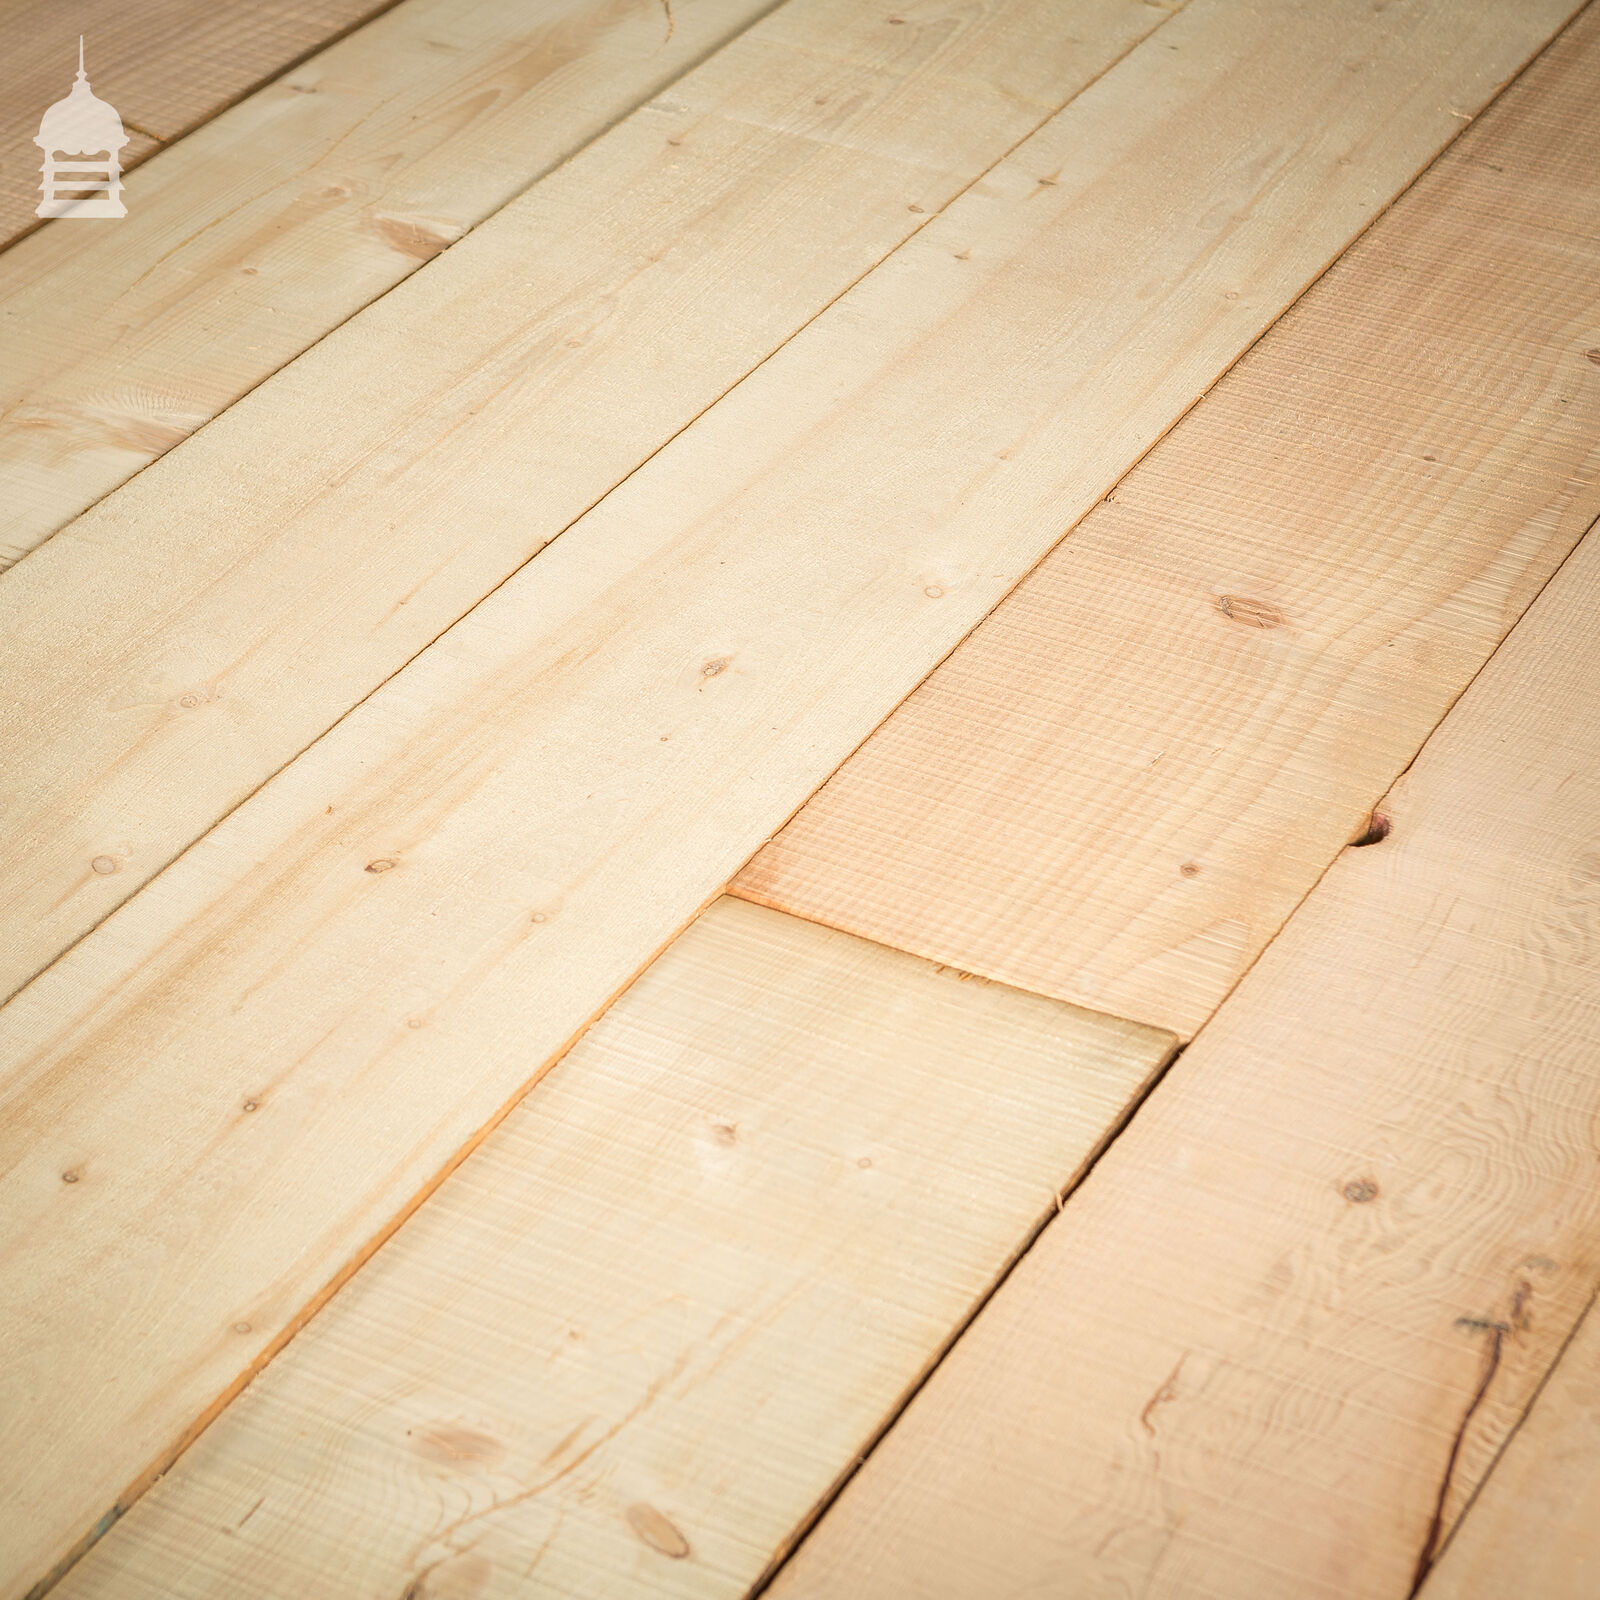 12 Square Metres of Wide Pine Floorboard Wall Cladding Cut from Reclaimed Joists